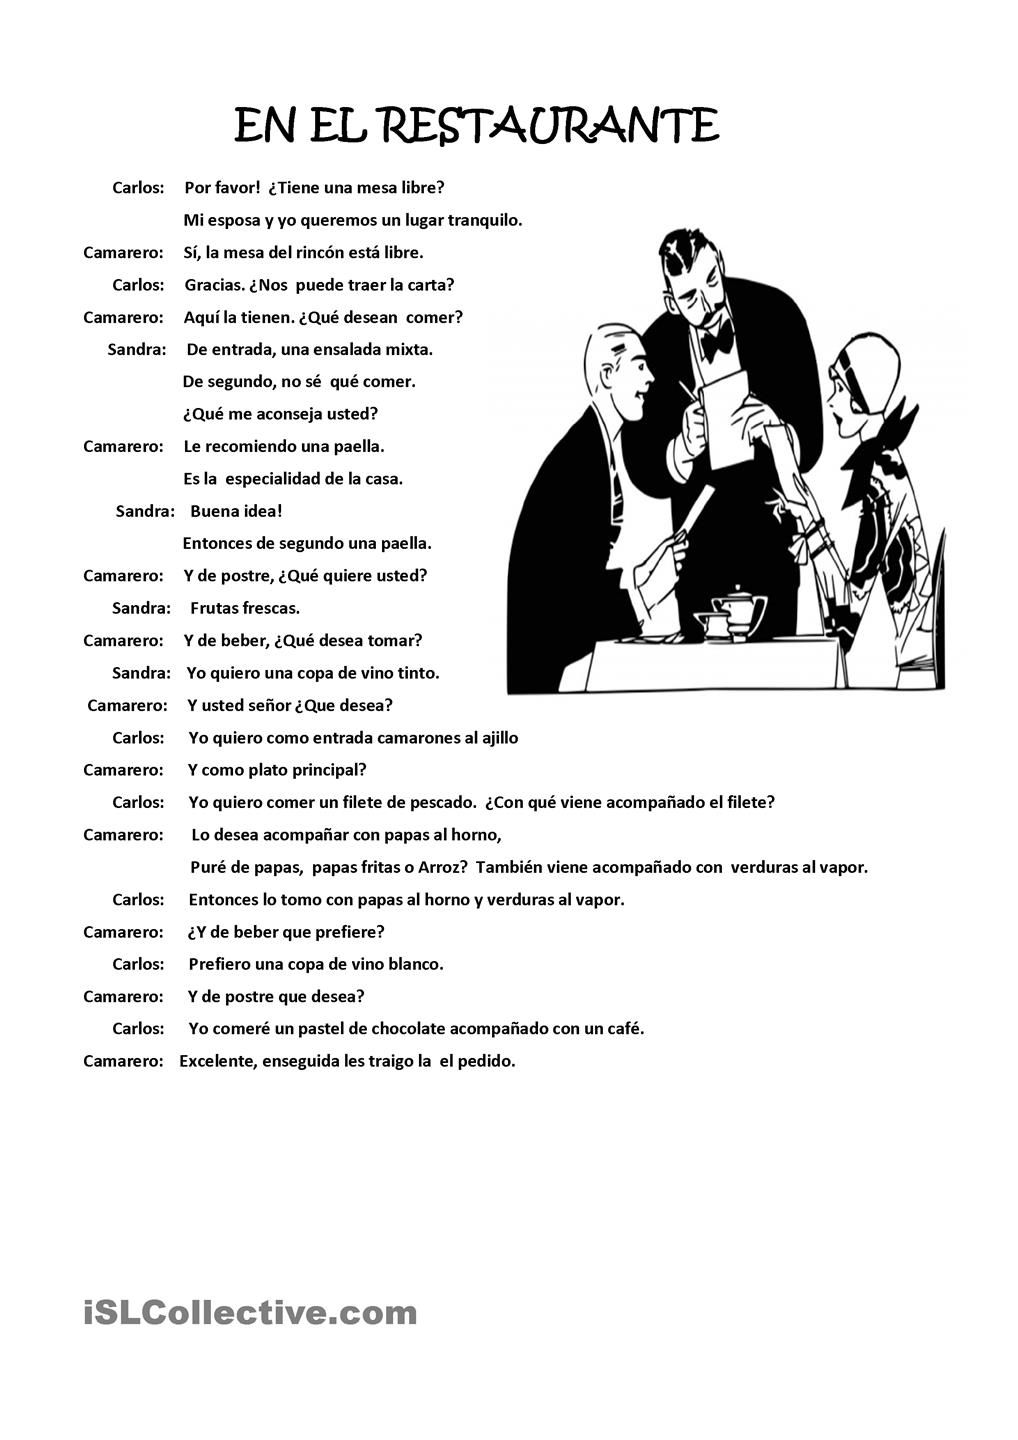 Dialogue Between Customers And Waiter In A Restaurant Comida Y